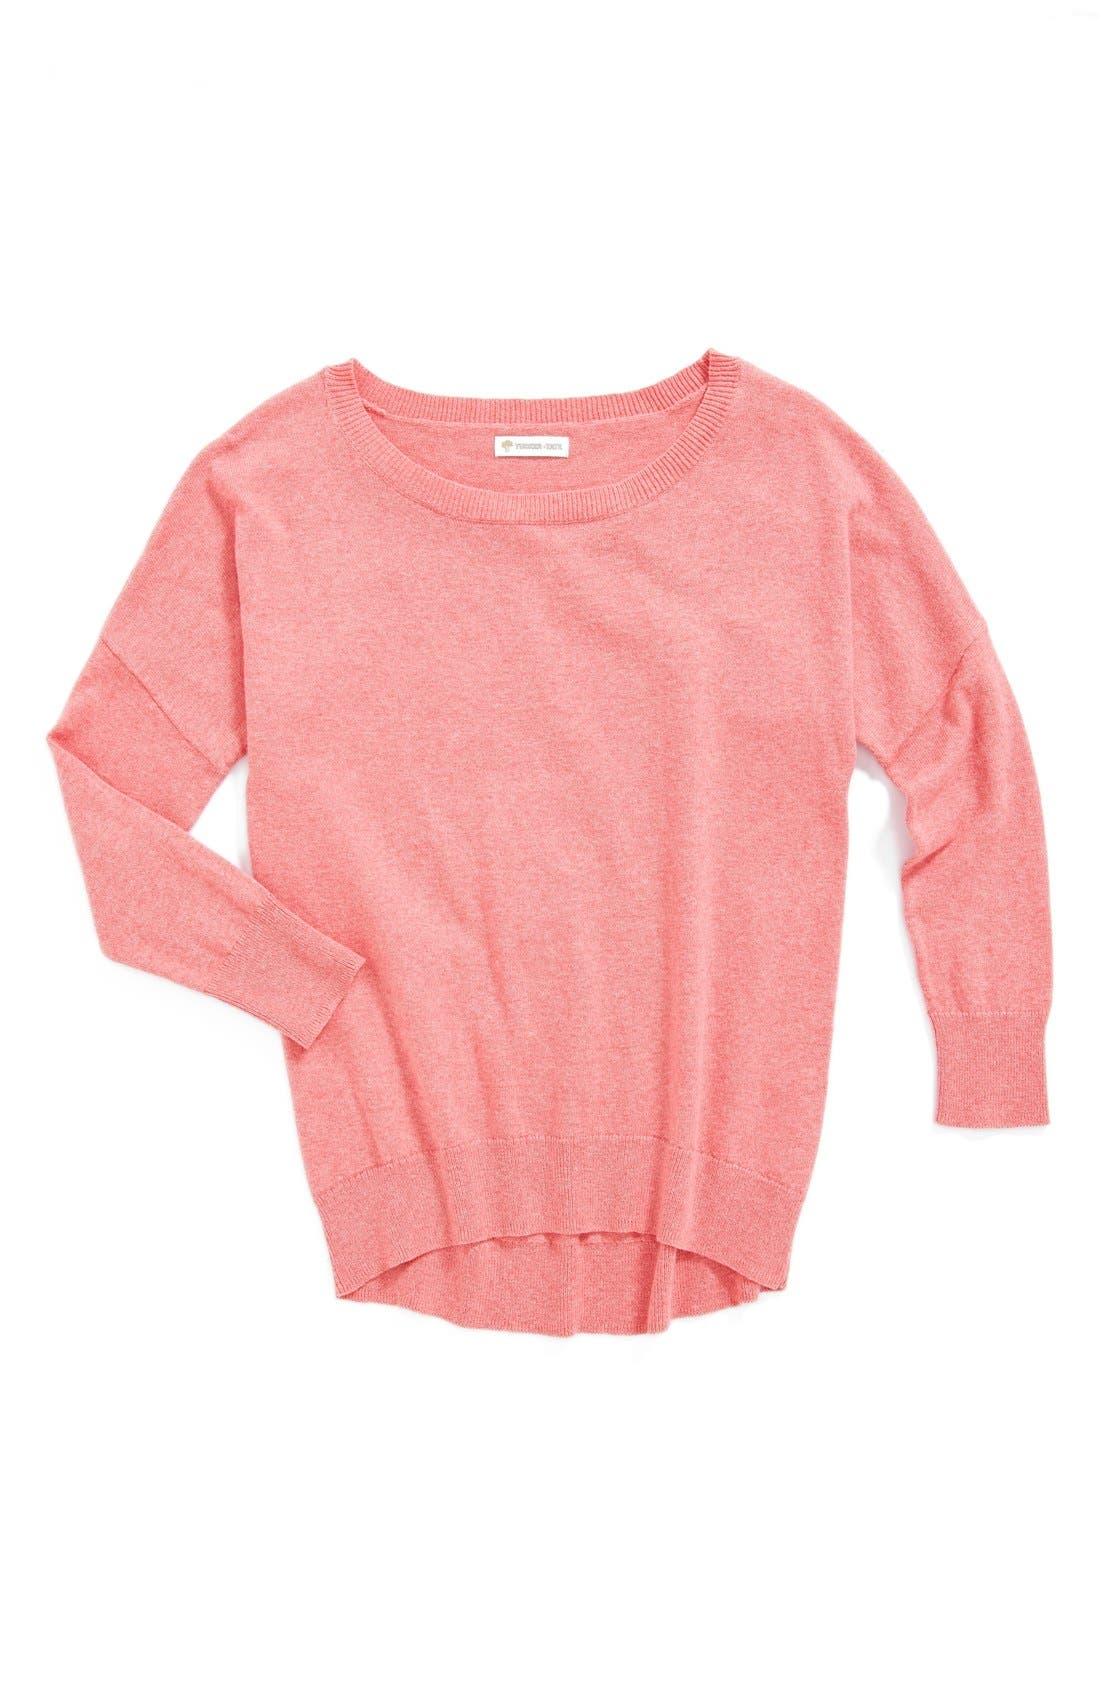 Alternate Image 1 Selected - Tucker + Tate High Low Cotton & Cashmere Sweater (Little Girls & Big Girls)